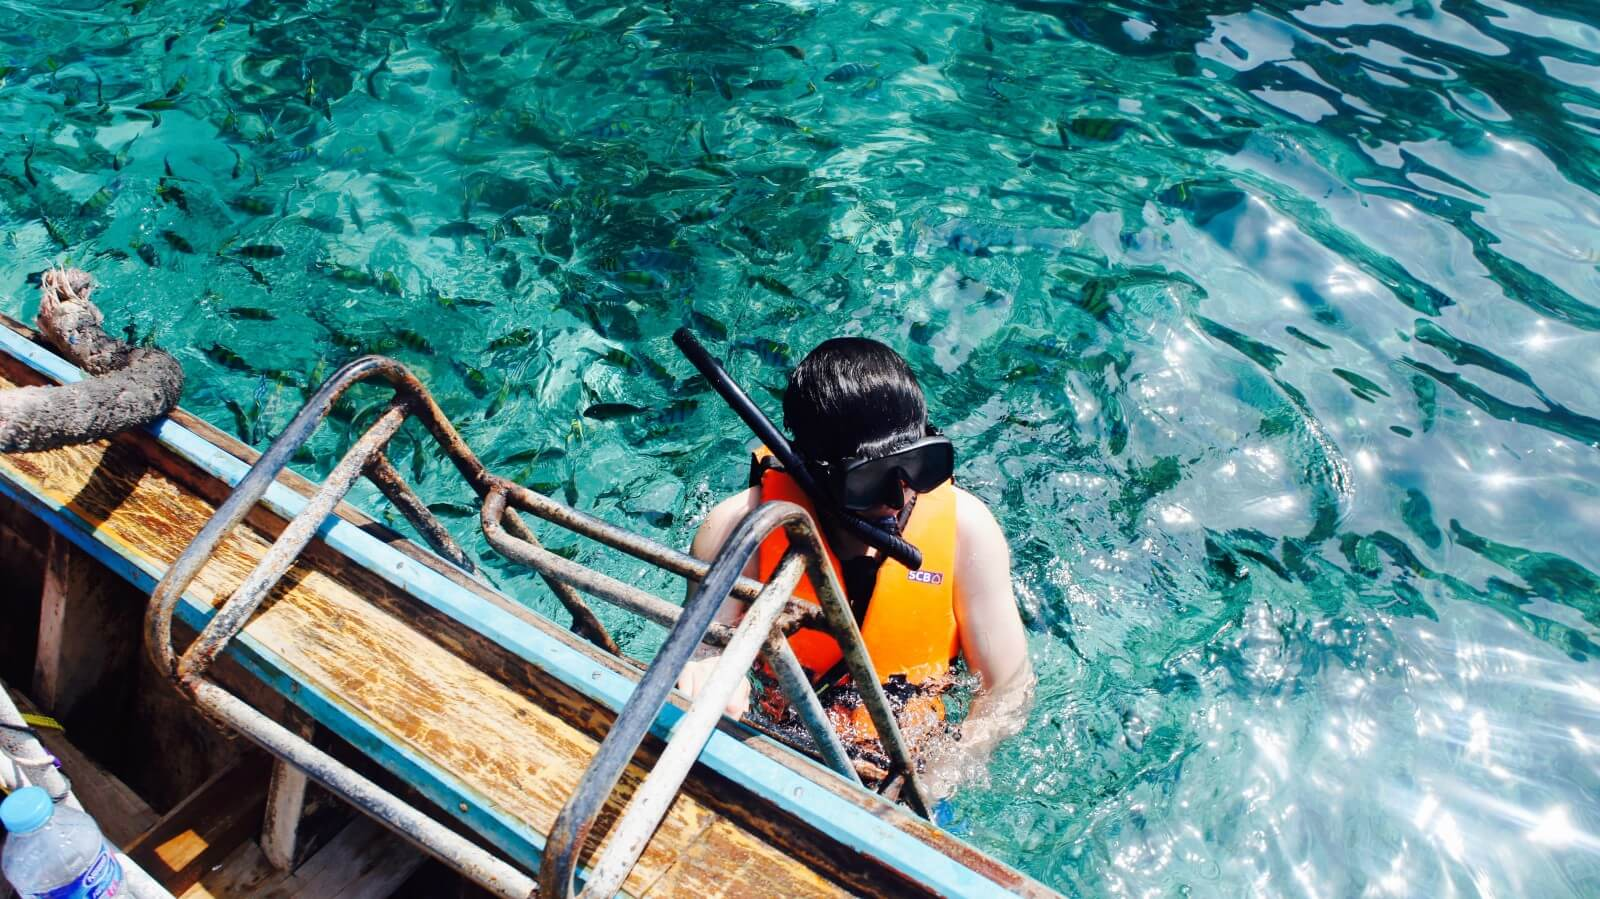 Snorkelling Scuba Diving Corals Fish PADI Advanced Open Water Diver Course Whaleshark Thailand Marine Life Underwater Sea Creatures Adventure Travel The Great Next